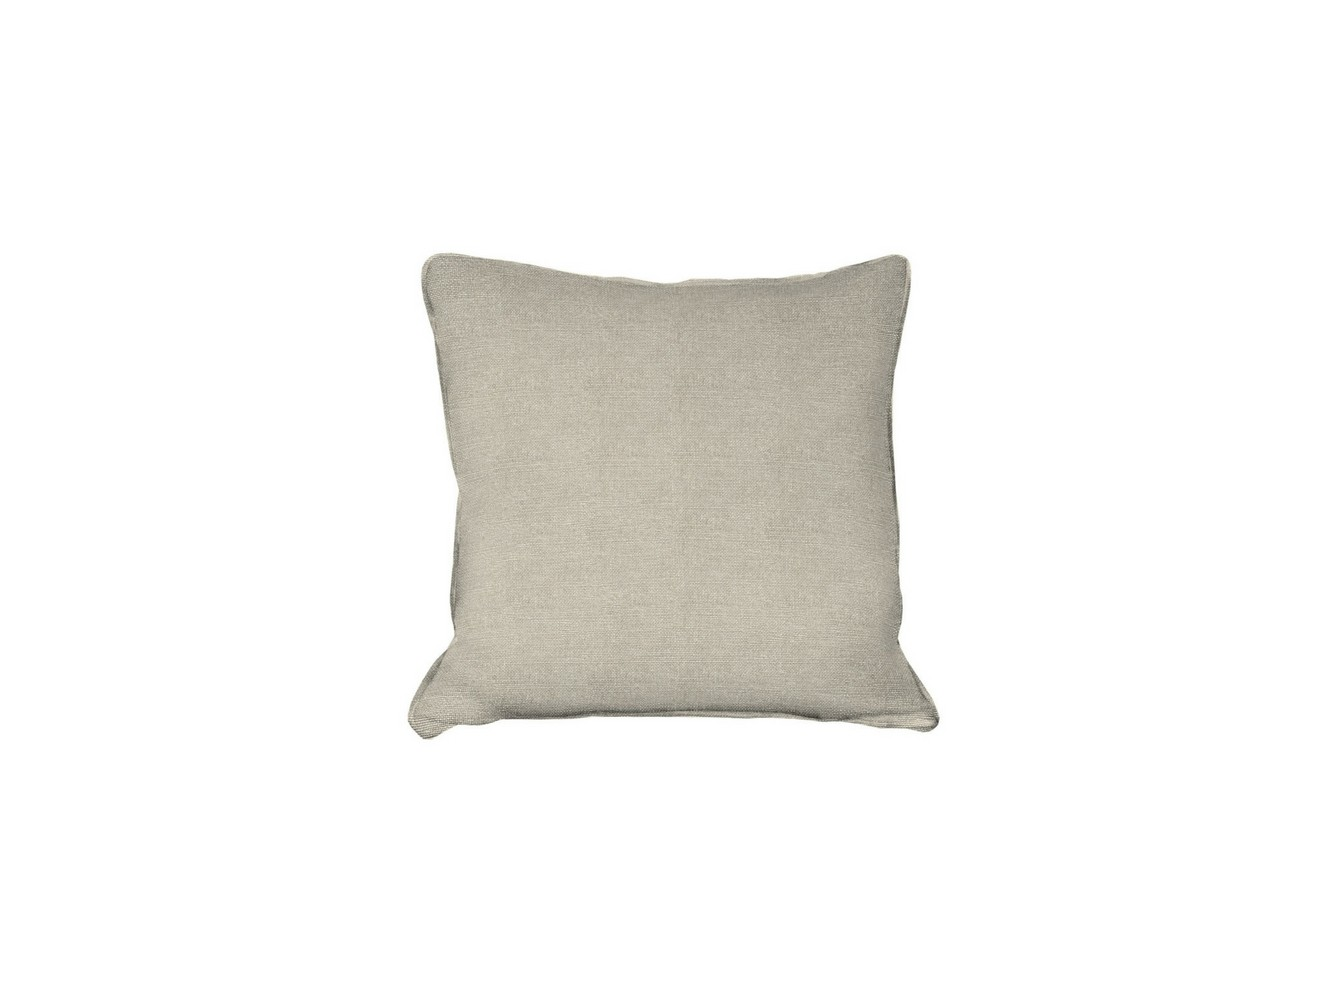 Extra Scatter Cushions - Fabric Hemp